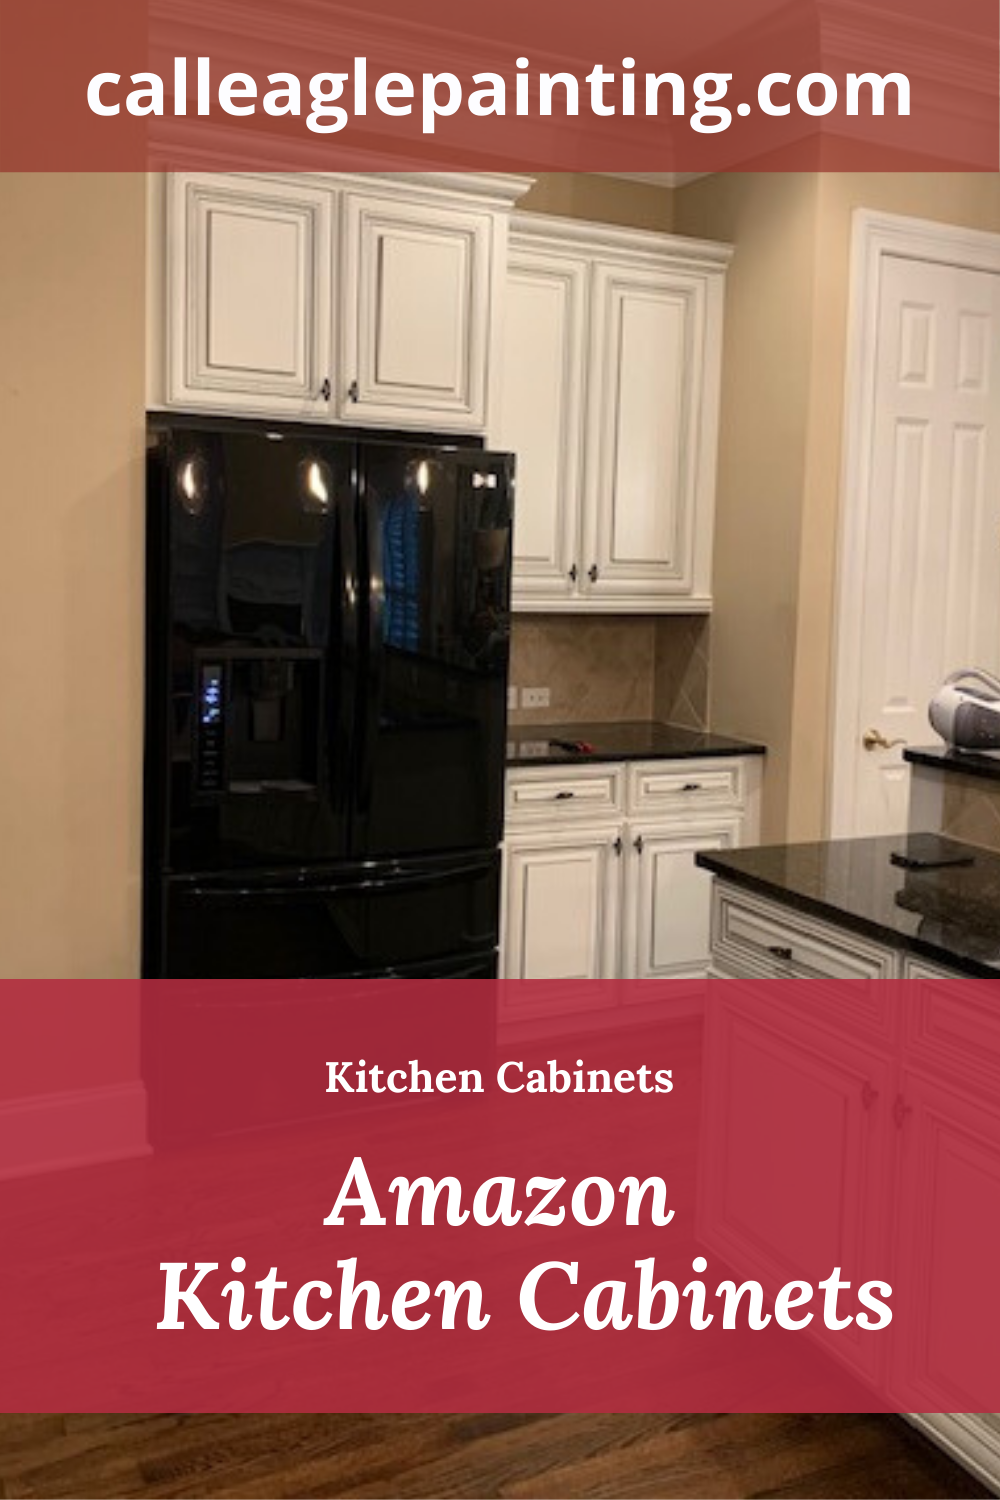 Amazon Kitchen Cabinets In 2020 Kitchen Cabinets Beautiful Kitchen Cabinets Cheap Kitchen Cabinets